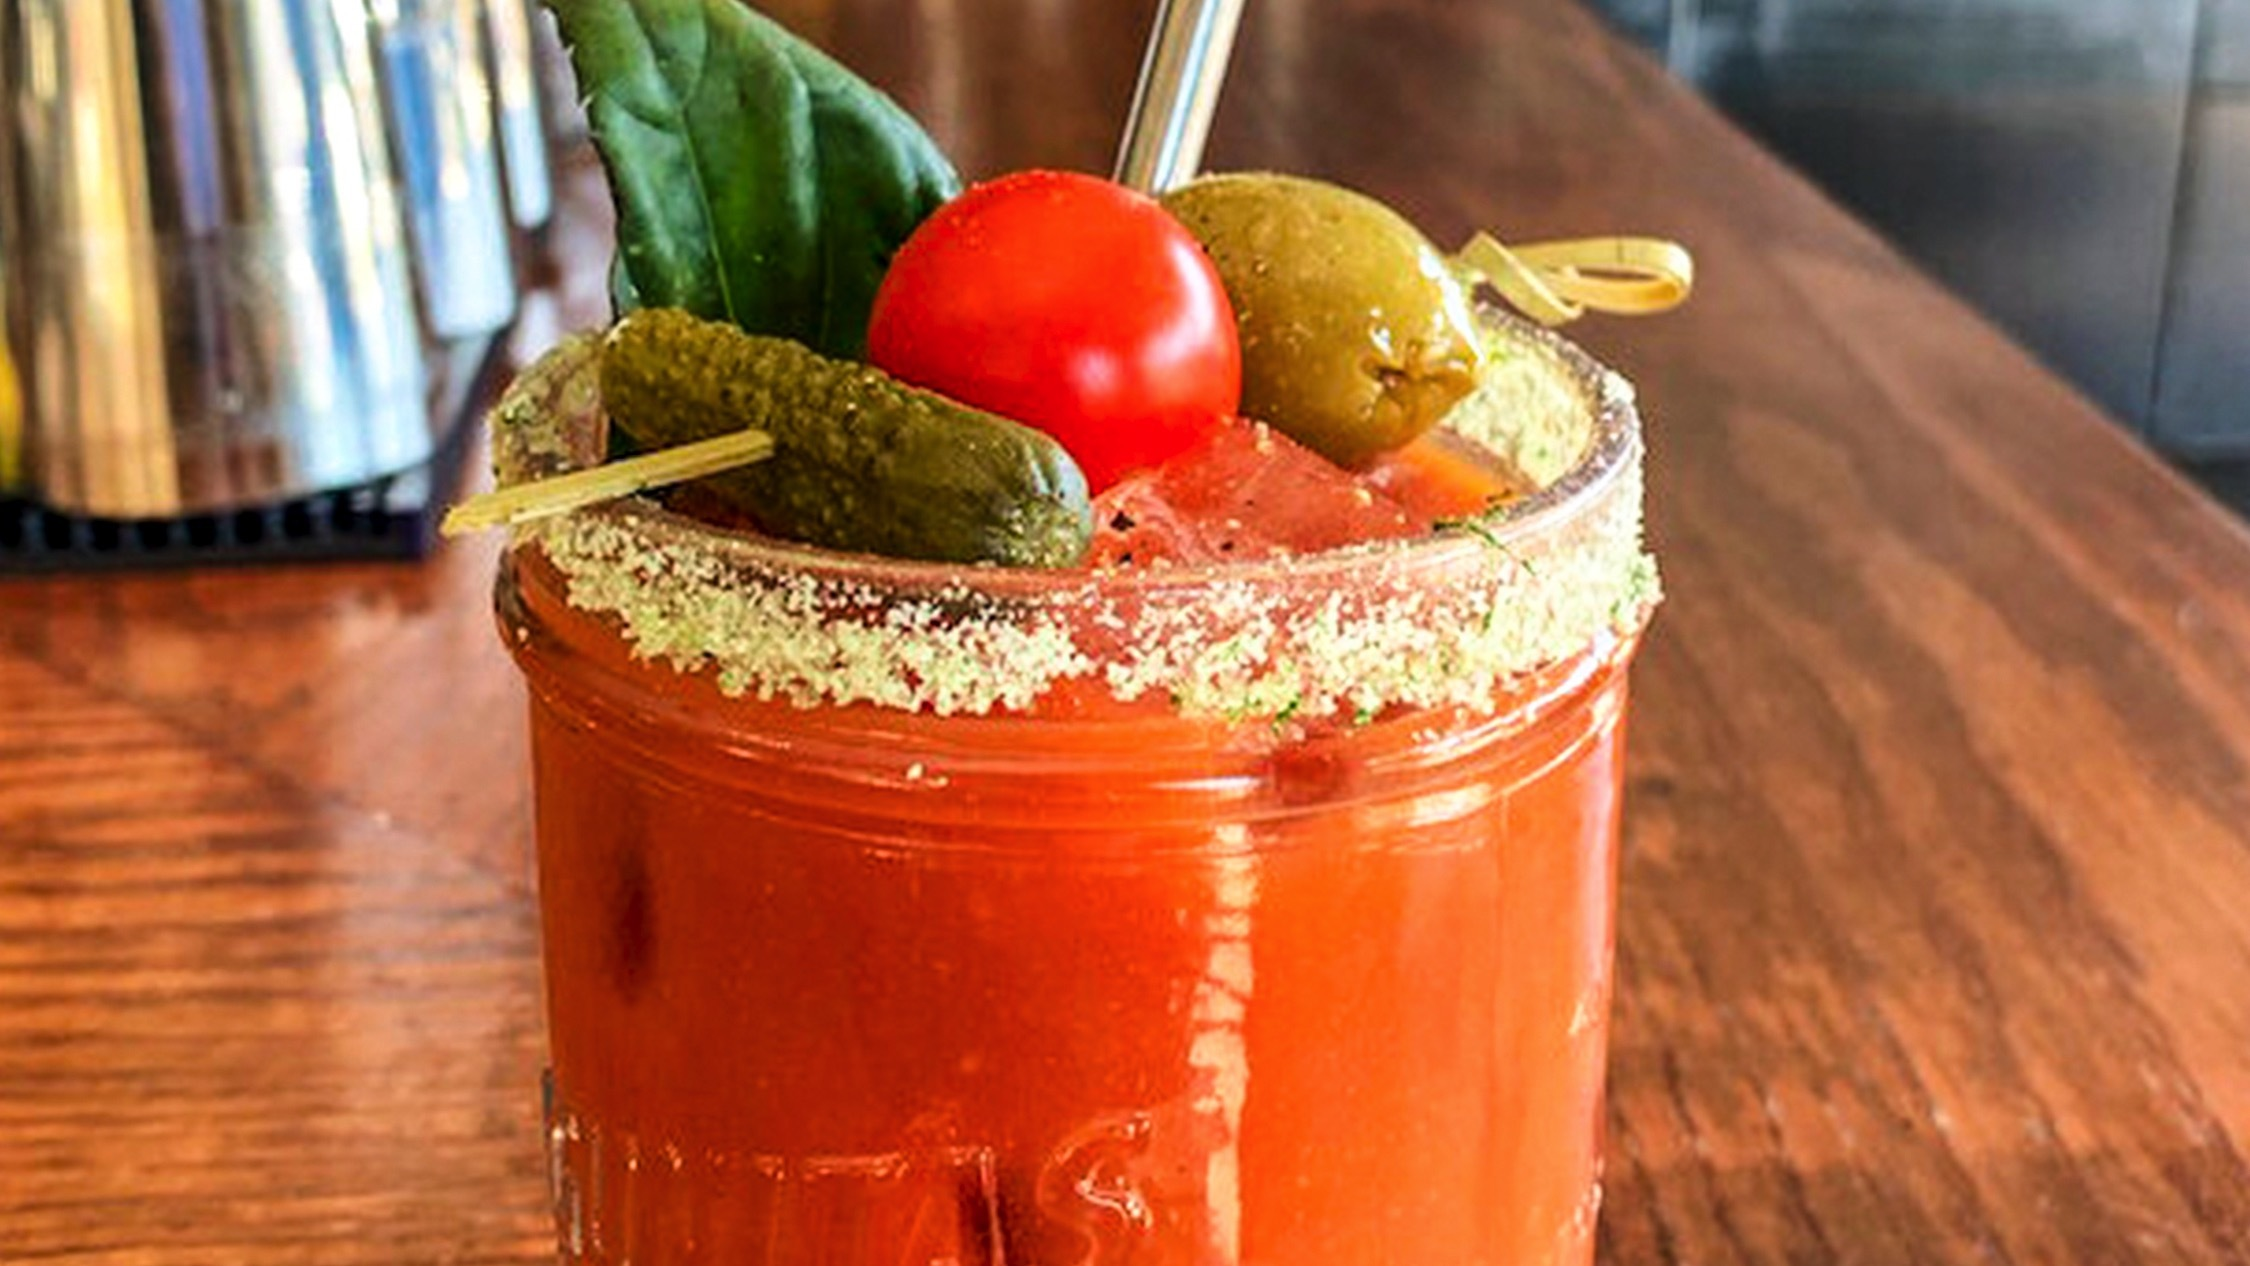 The Hive Bar bloody mary